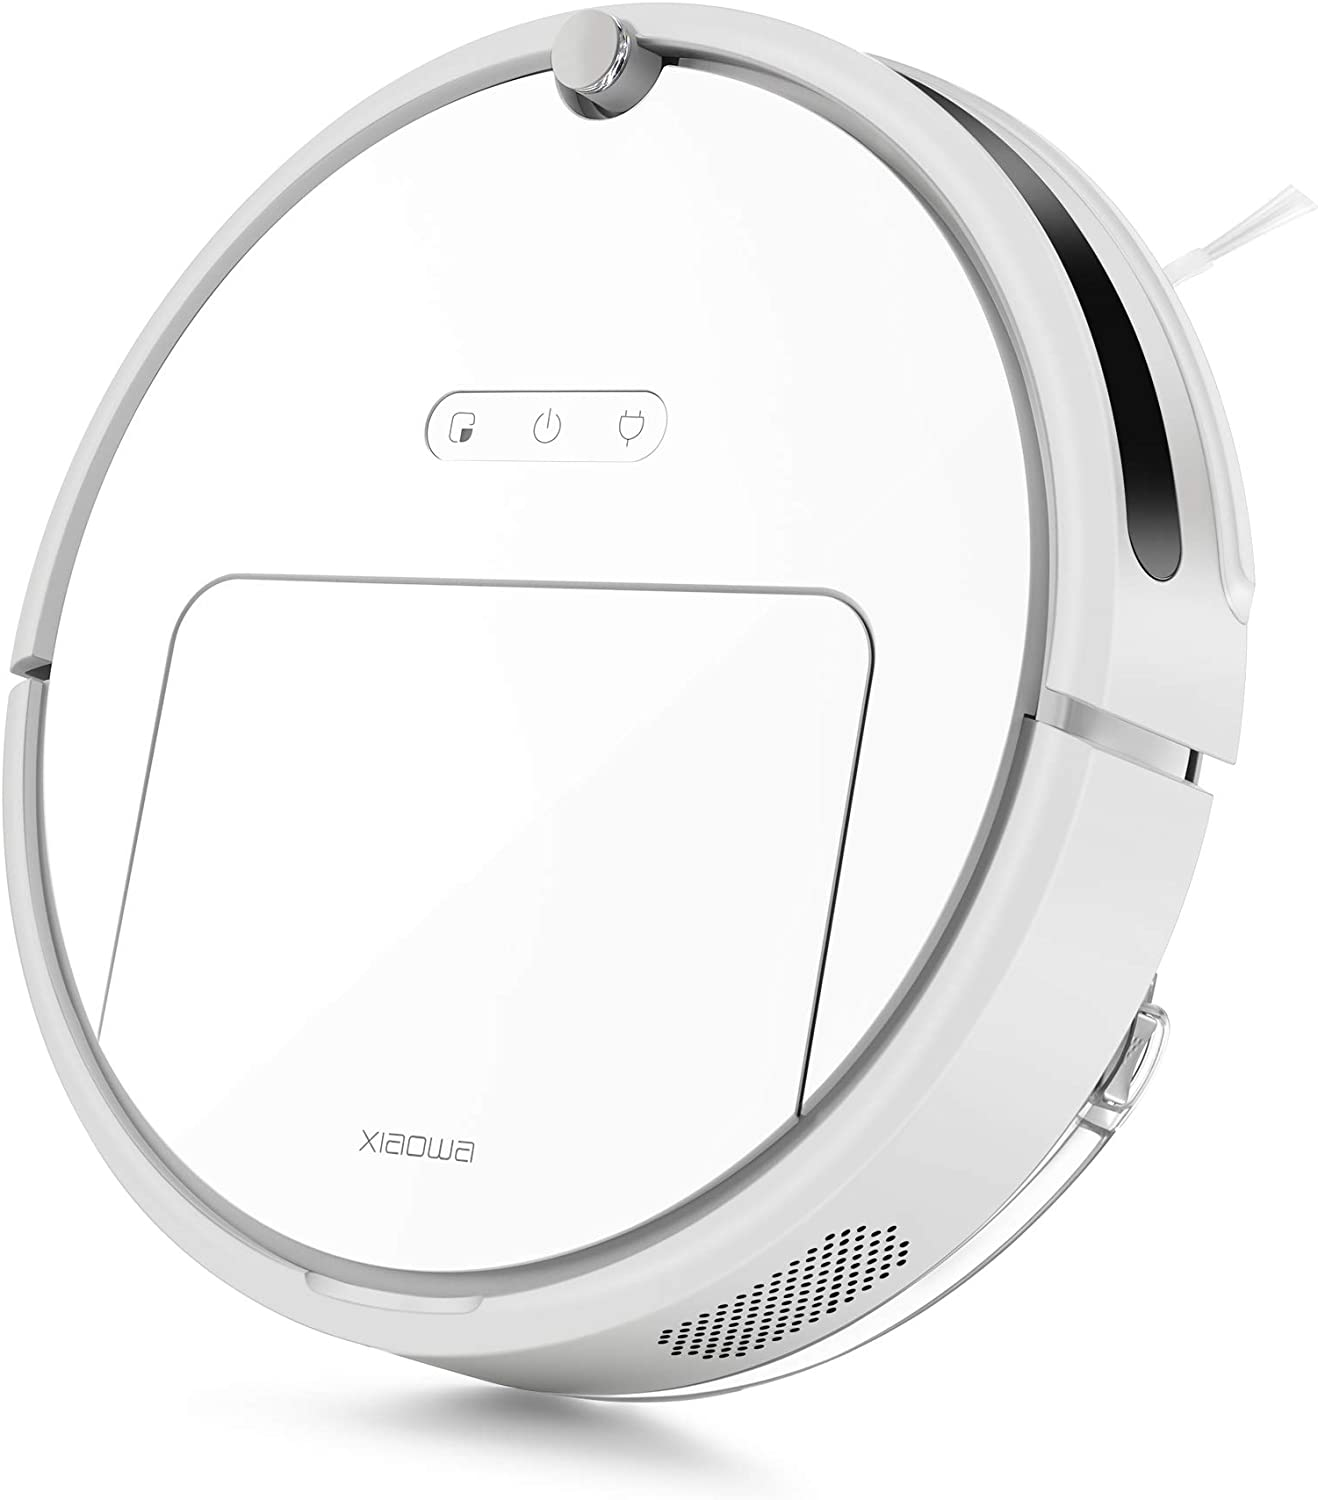 Ecovacs Deebot 711S best robot vacuum for carpet